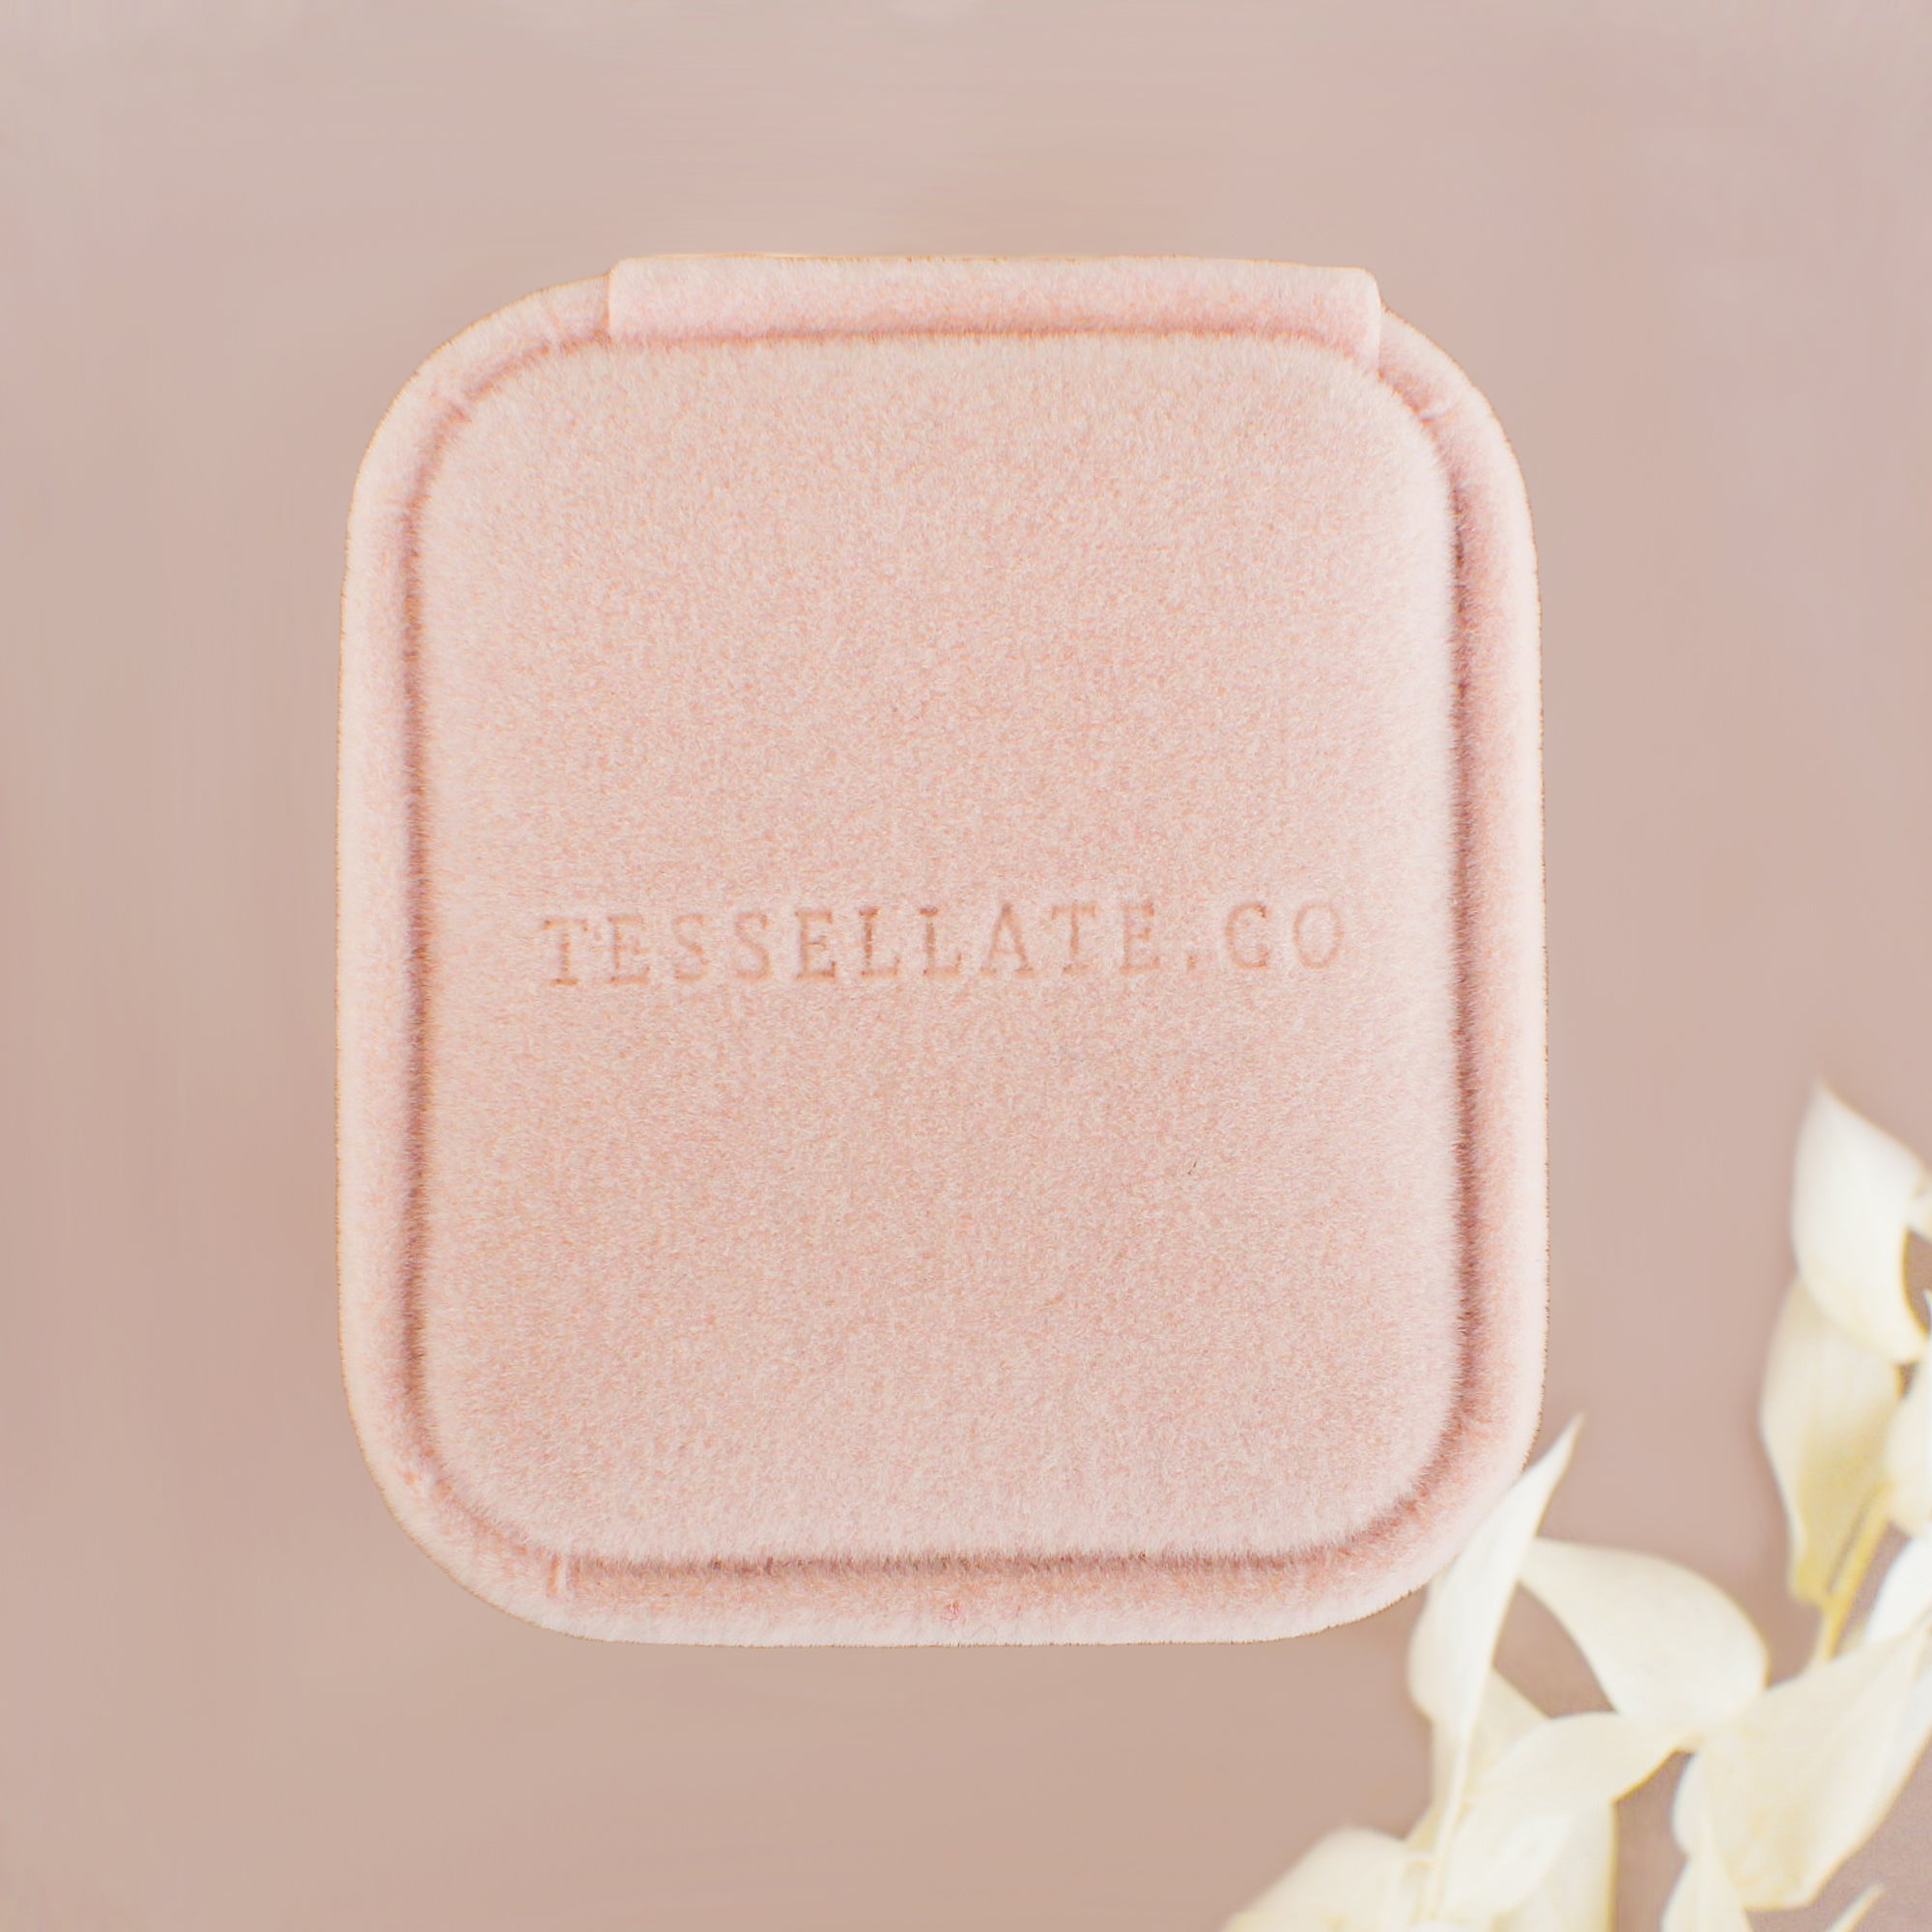 Gift Packaging - Tessellate.Co